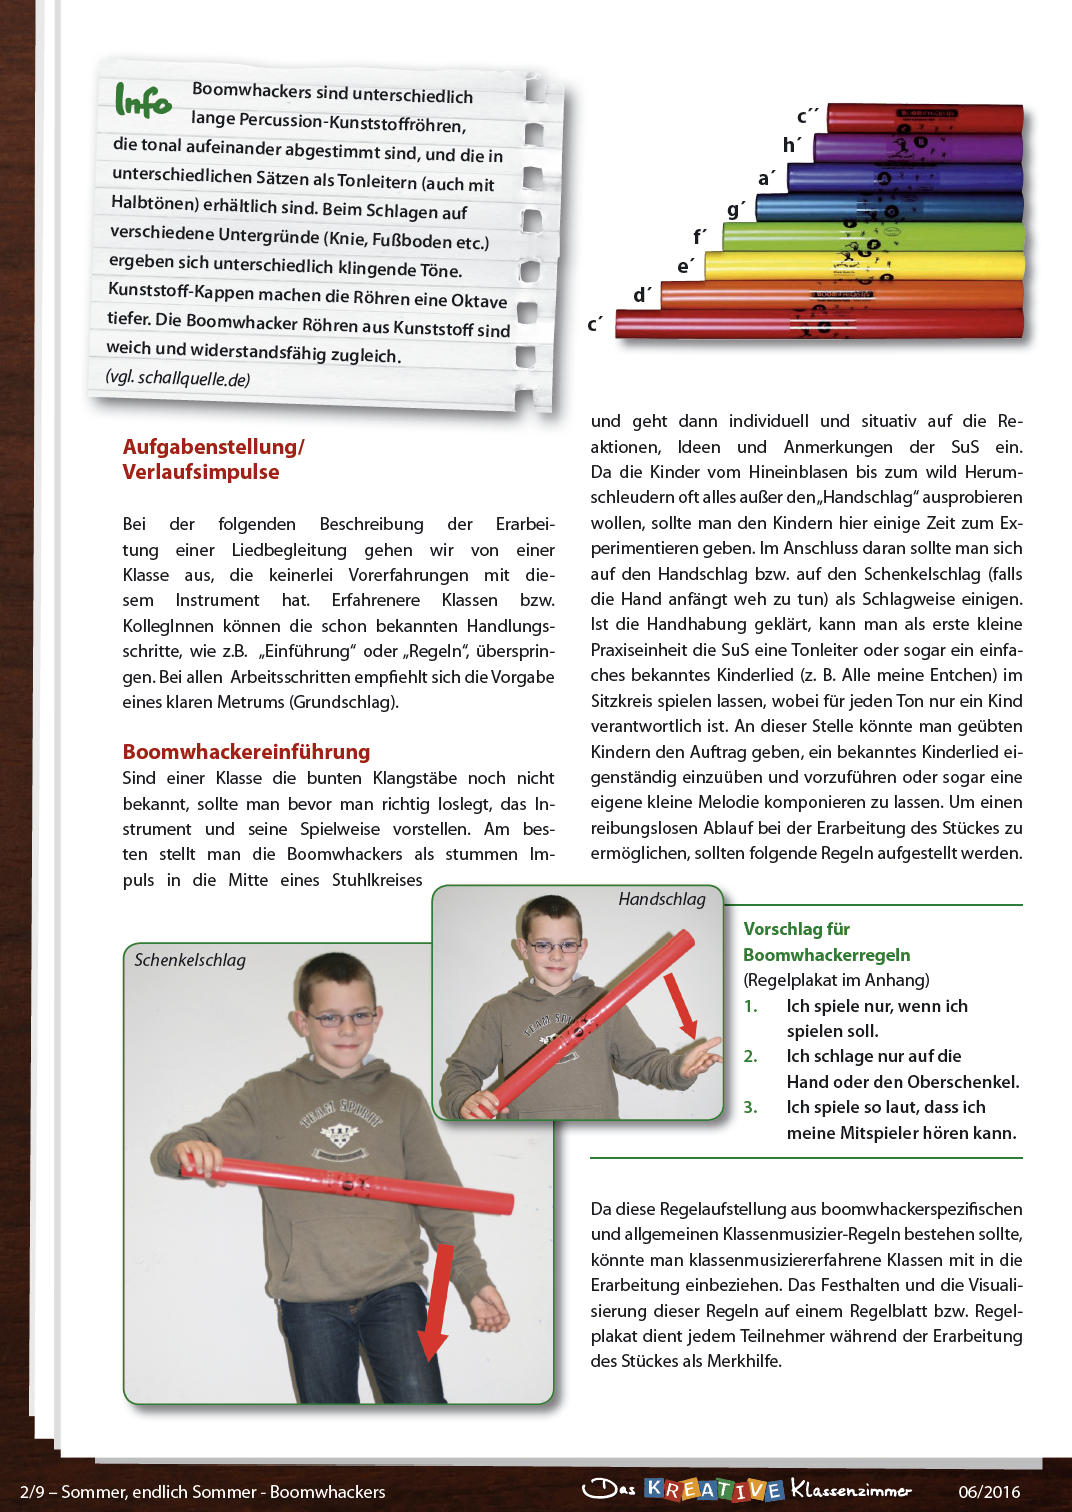 Sommer, endlich Sommer - Boomwhackers